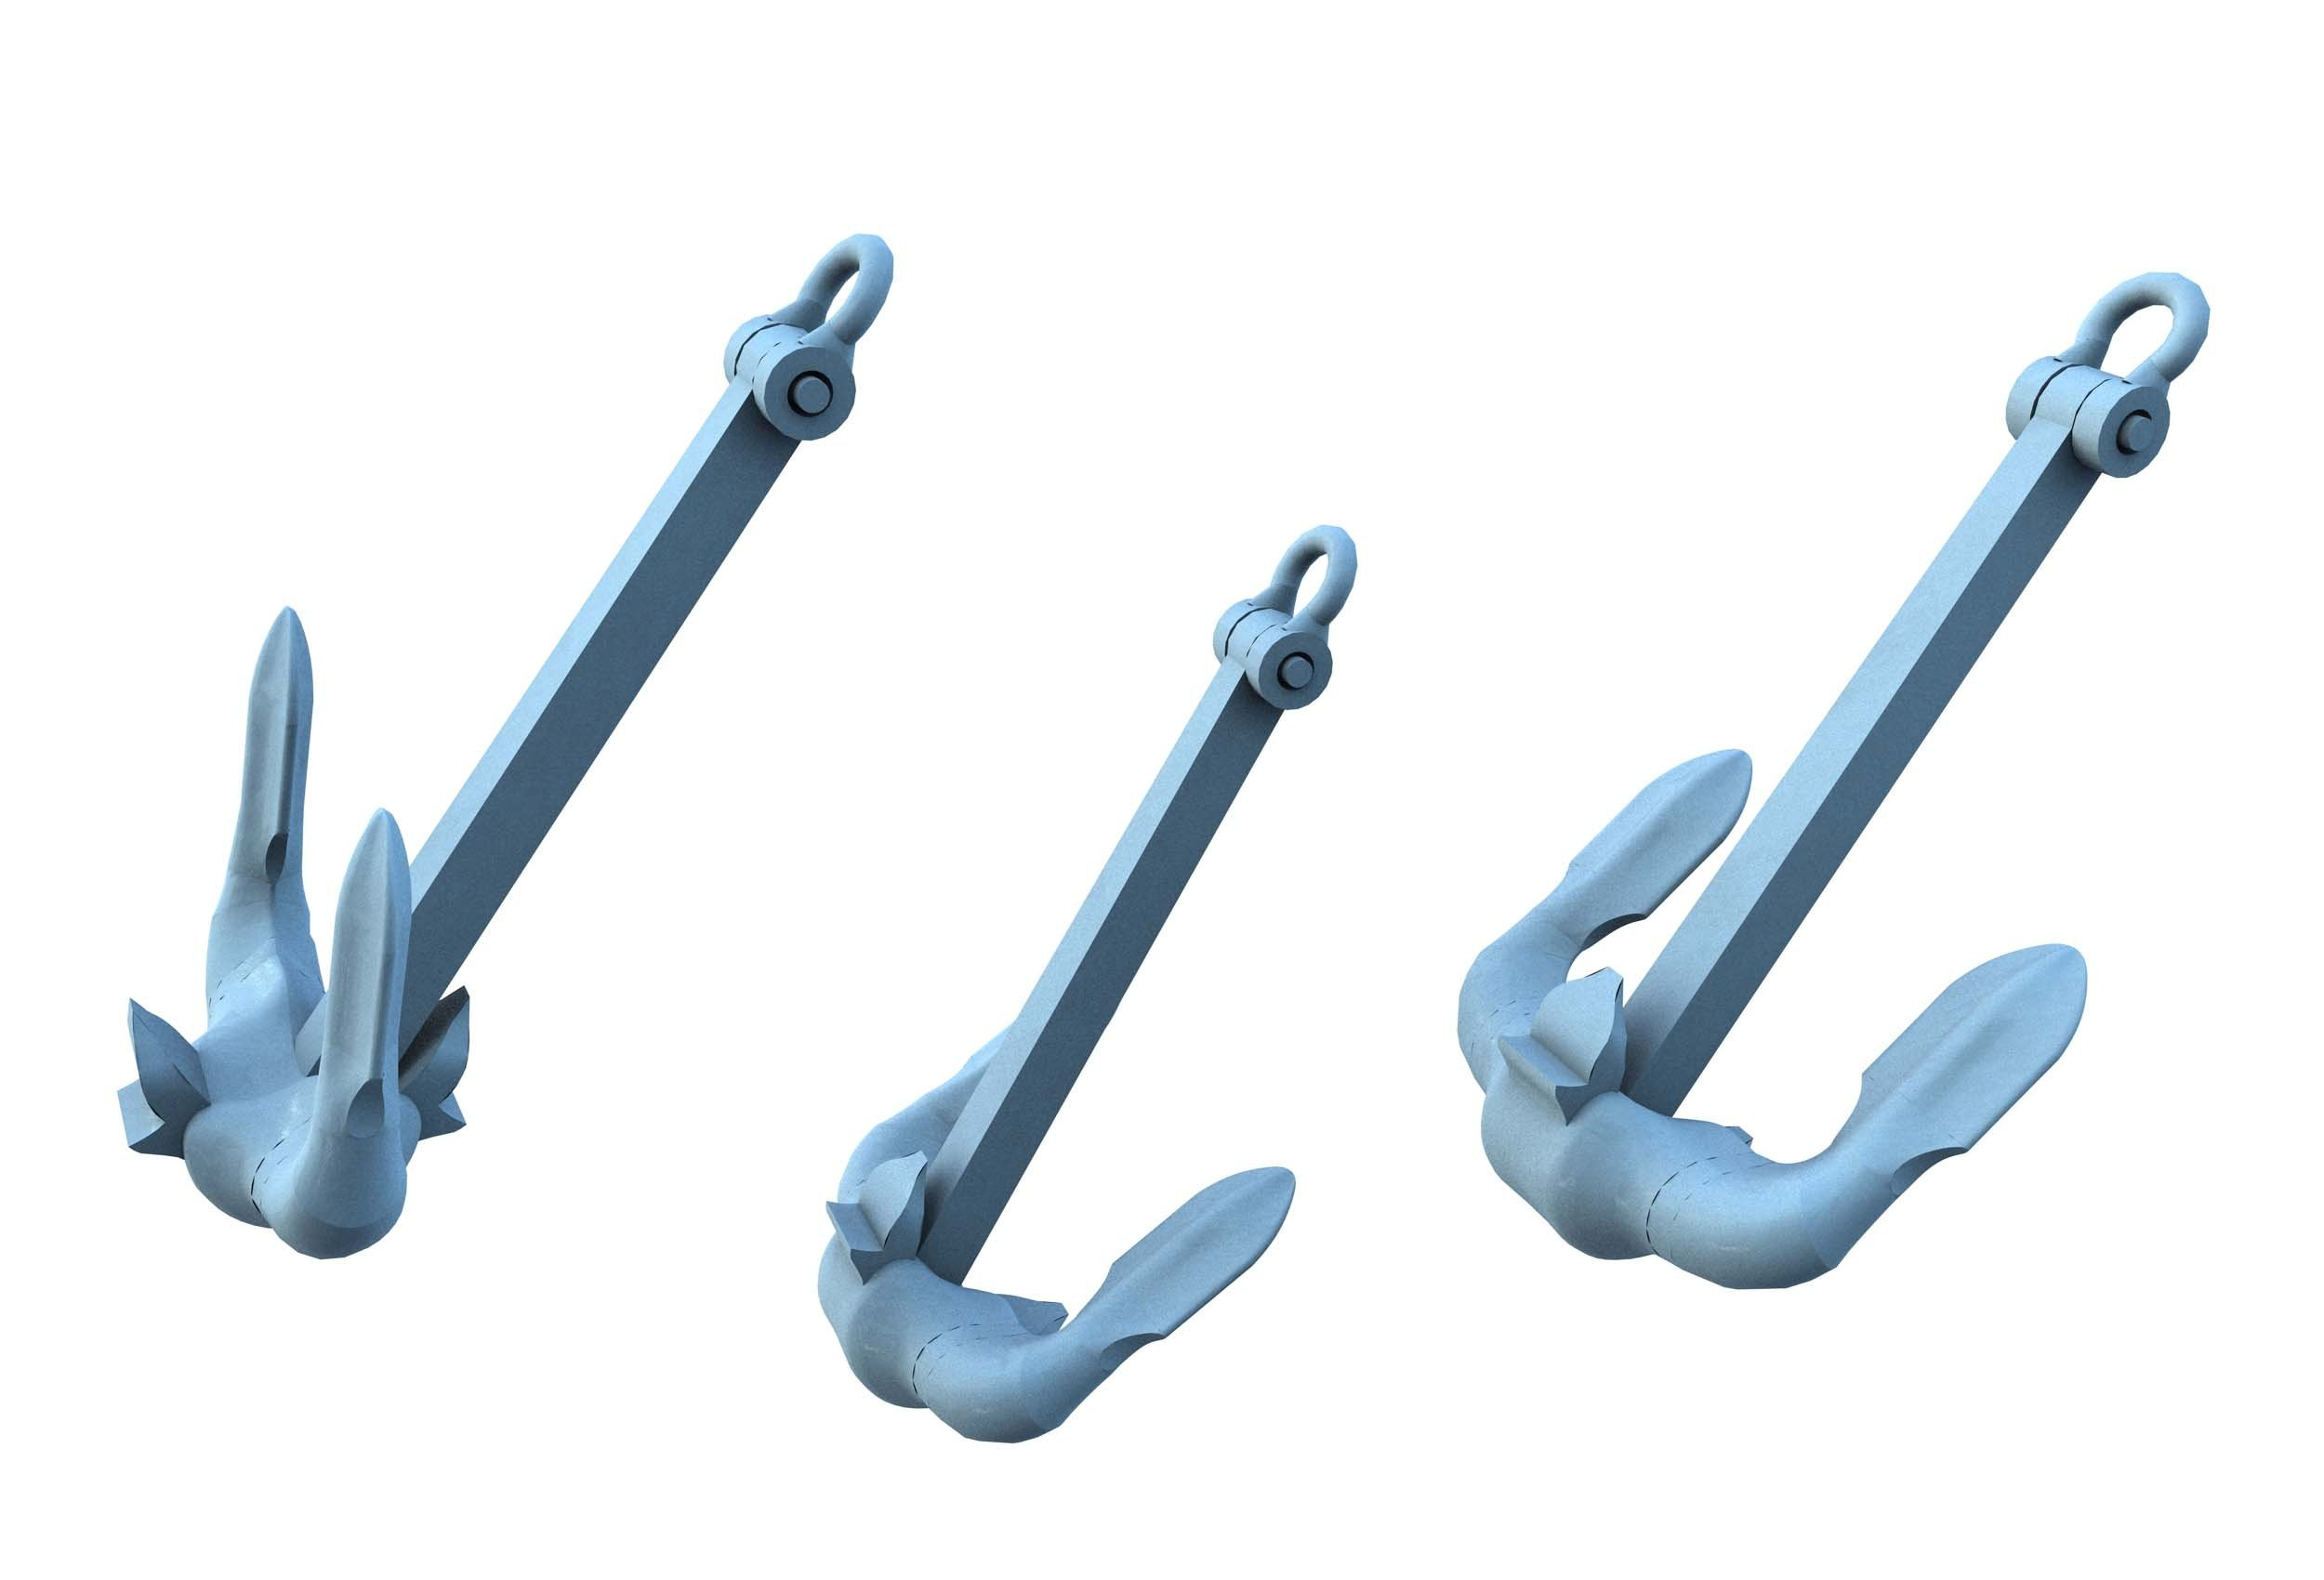 https://0901.nccdn.net/4_2/000/000/001/e27/CK62-Individual-Bow-Anchors-2500x1700.jpg